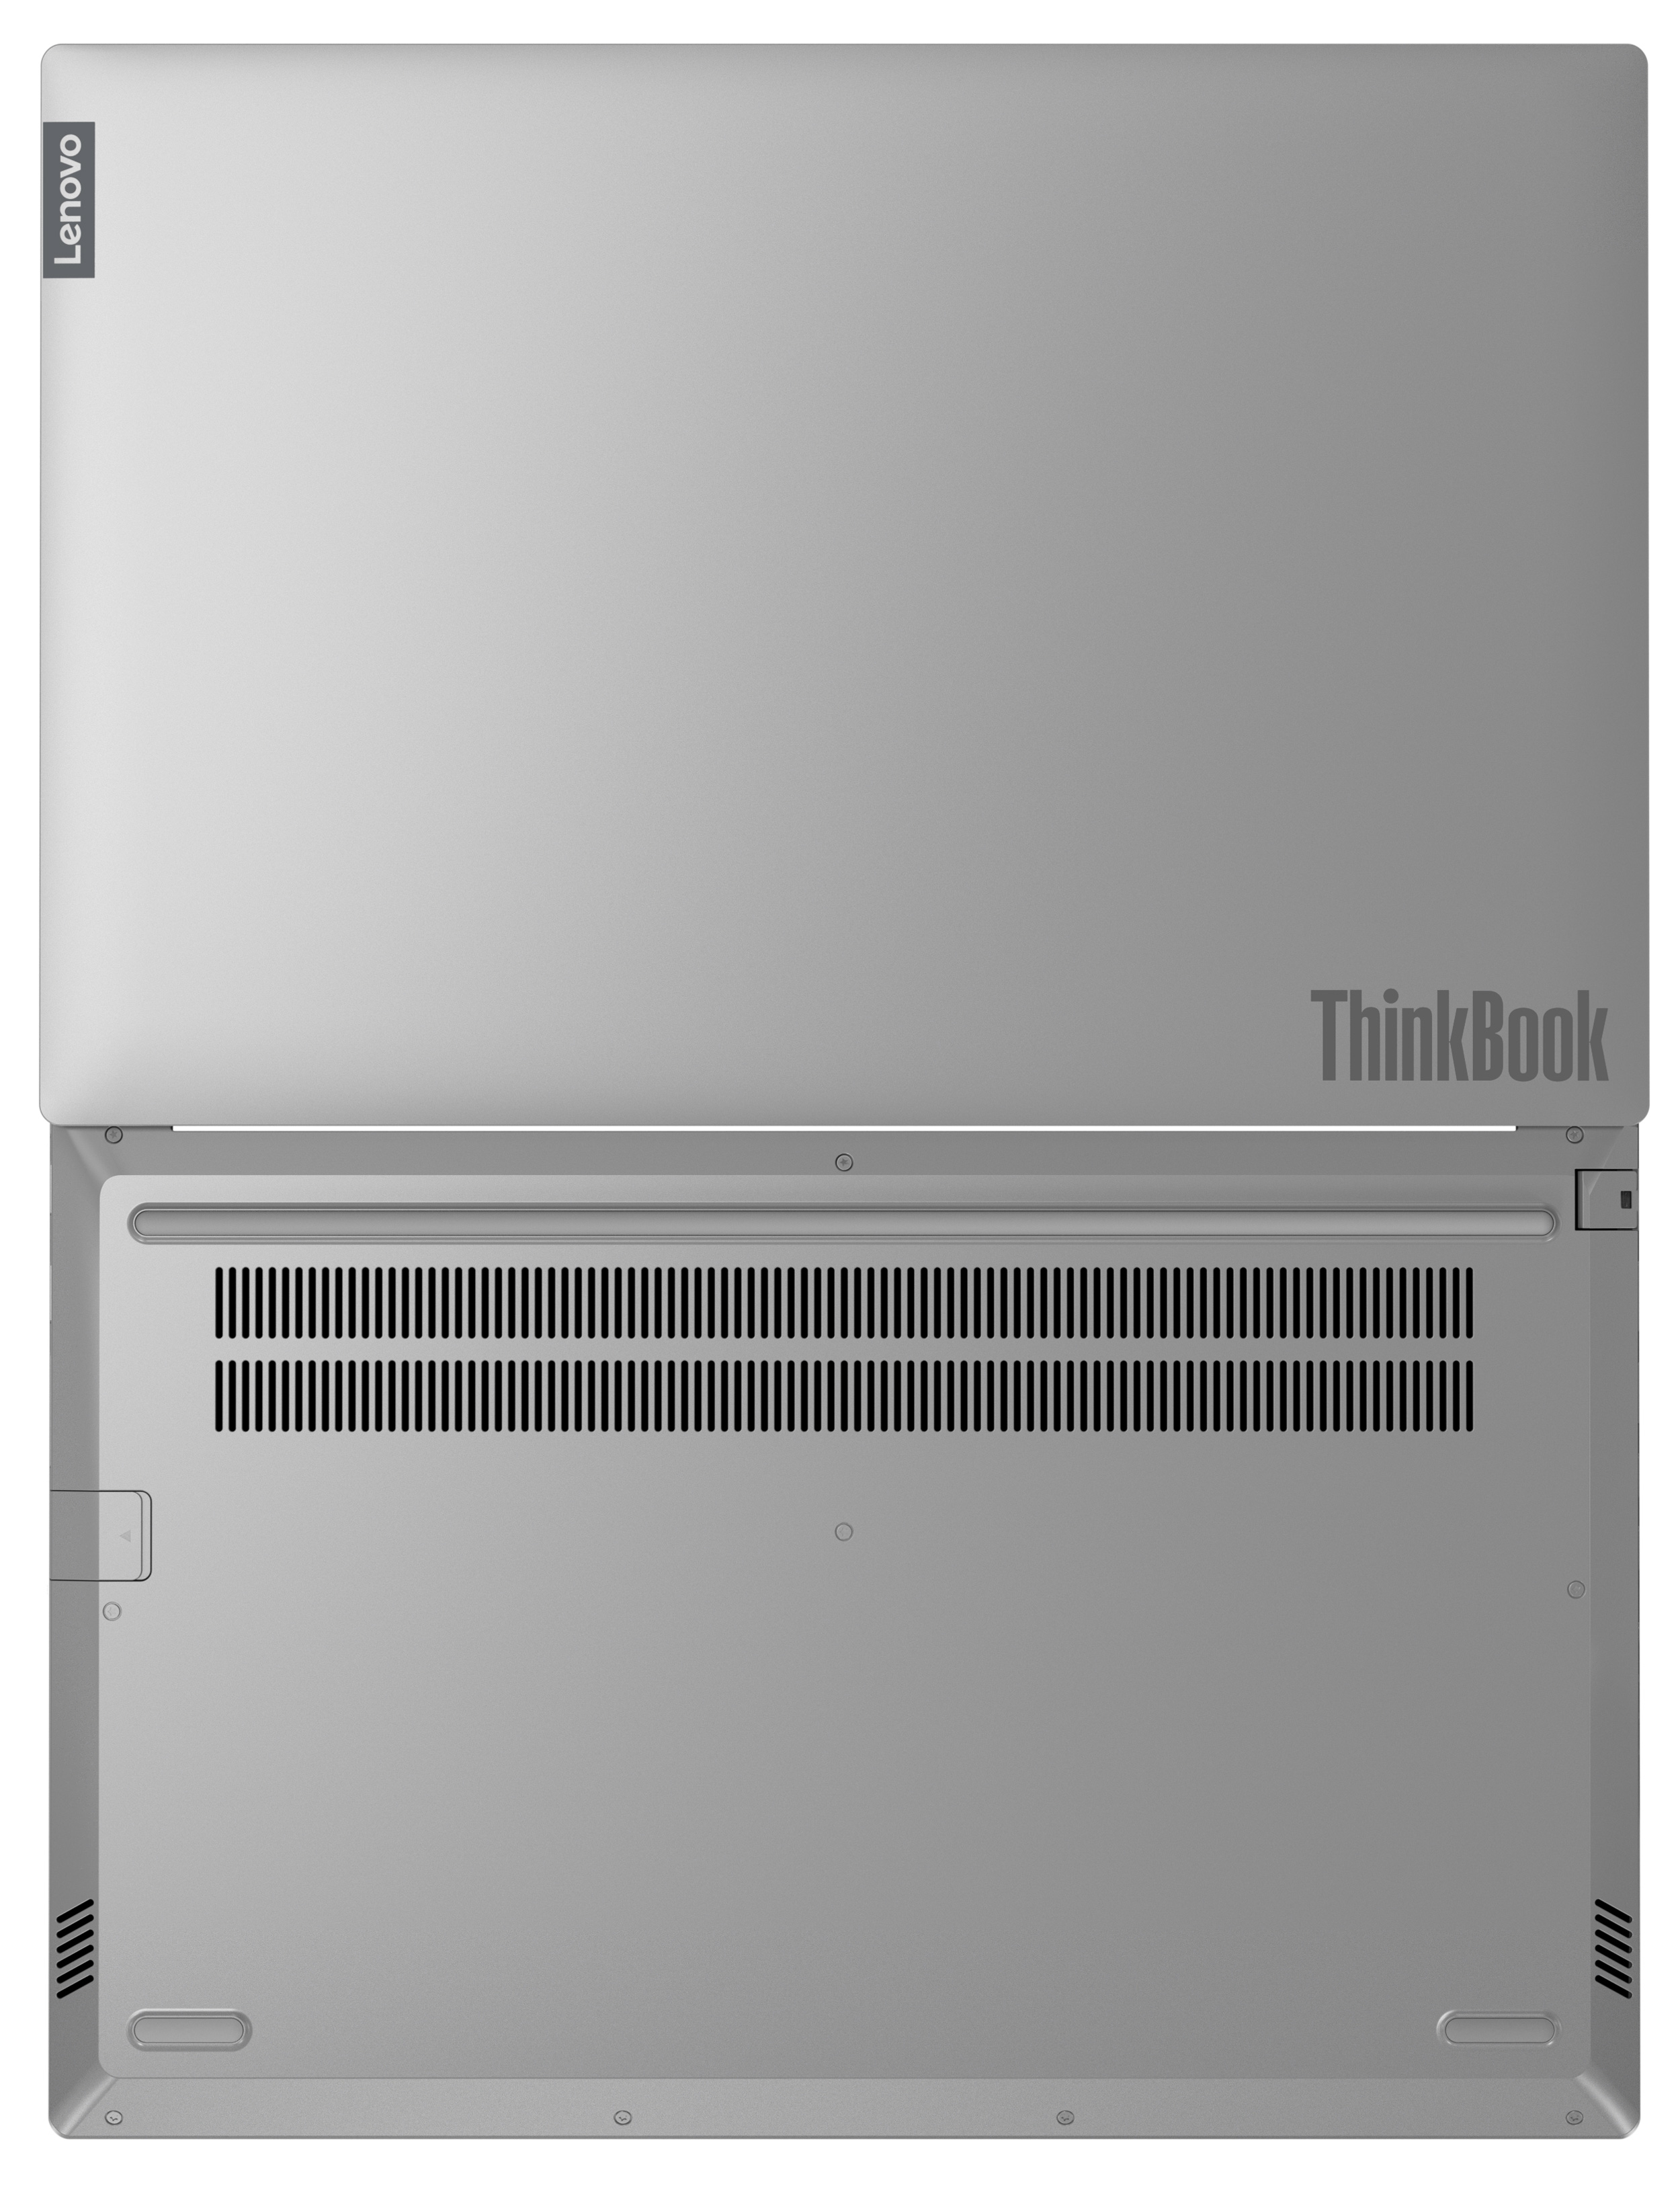 Фото  Ноутбук ThinkBook 15-IIL Mineral Grey (20SM009URU)